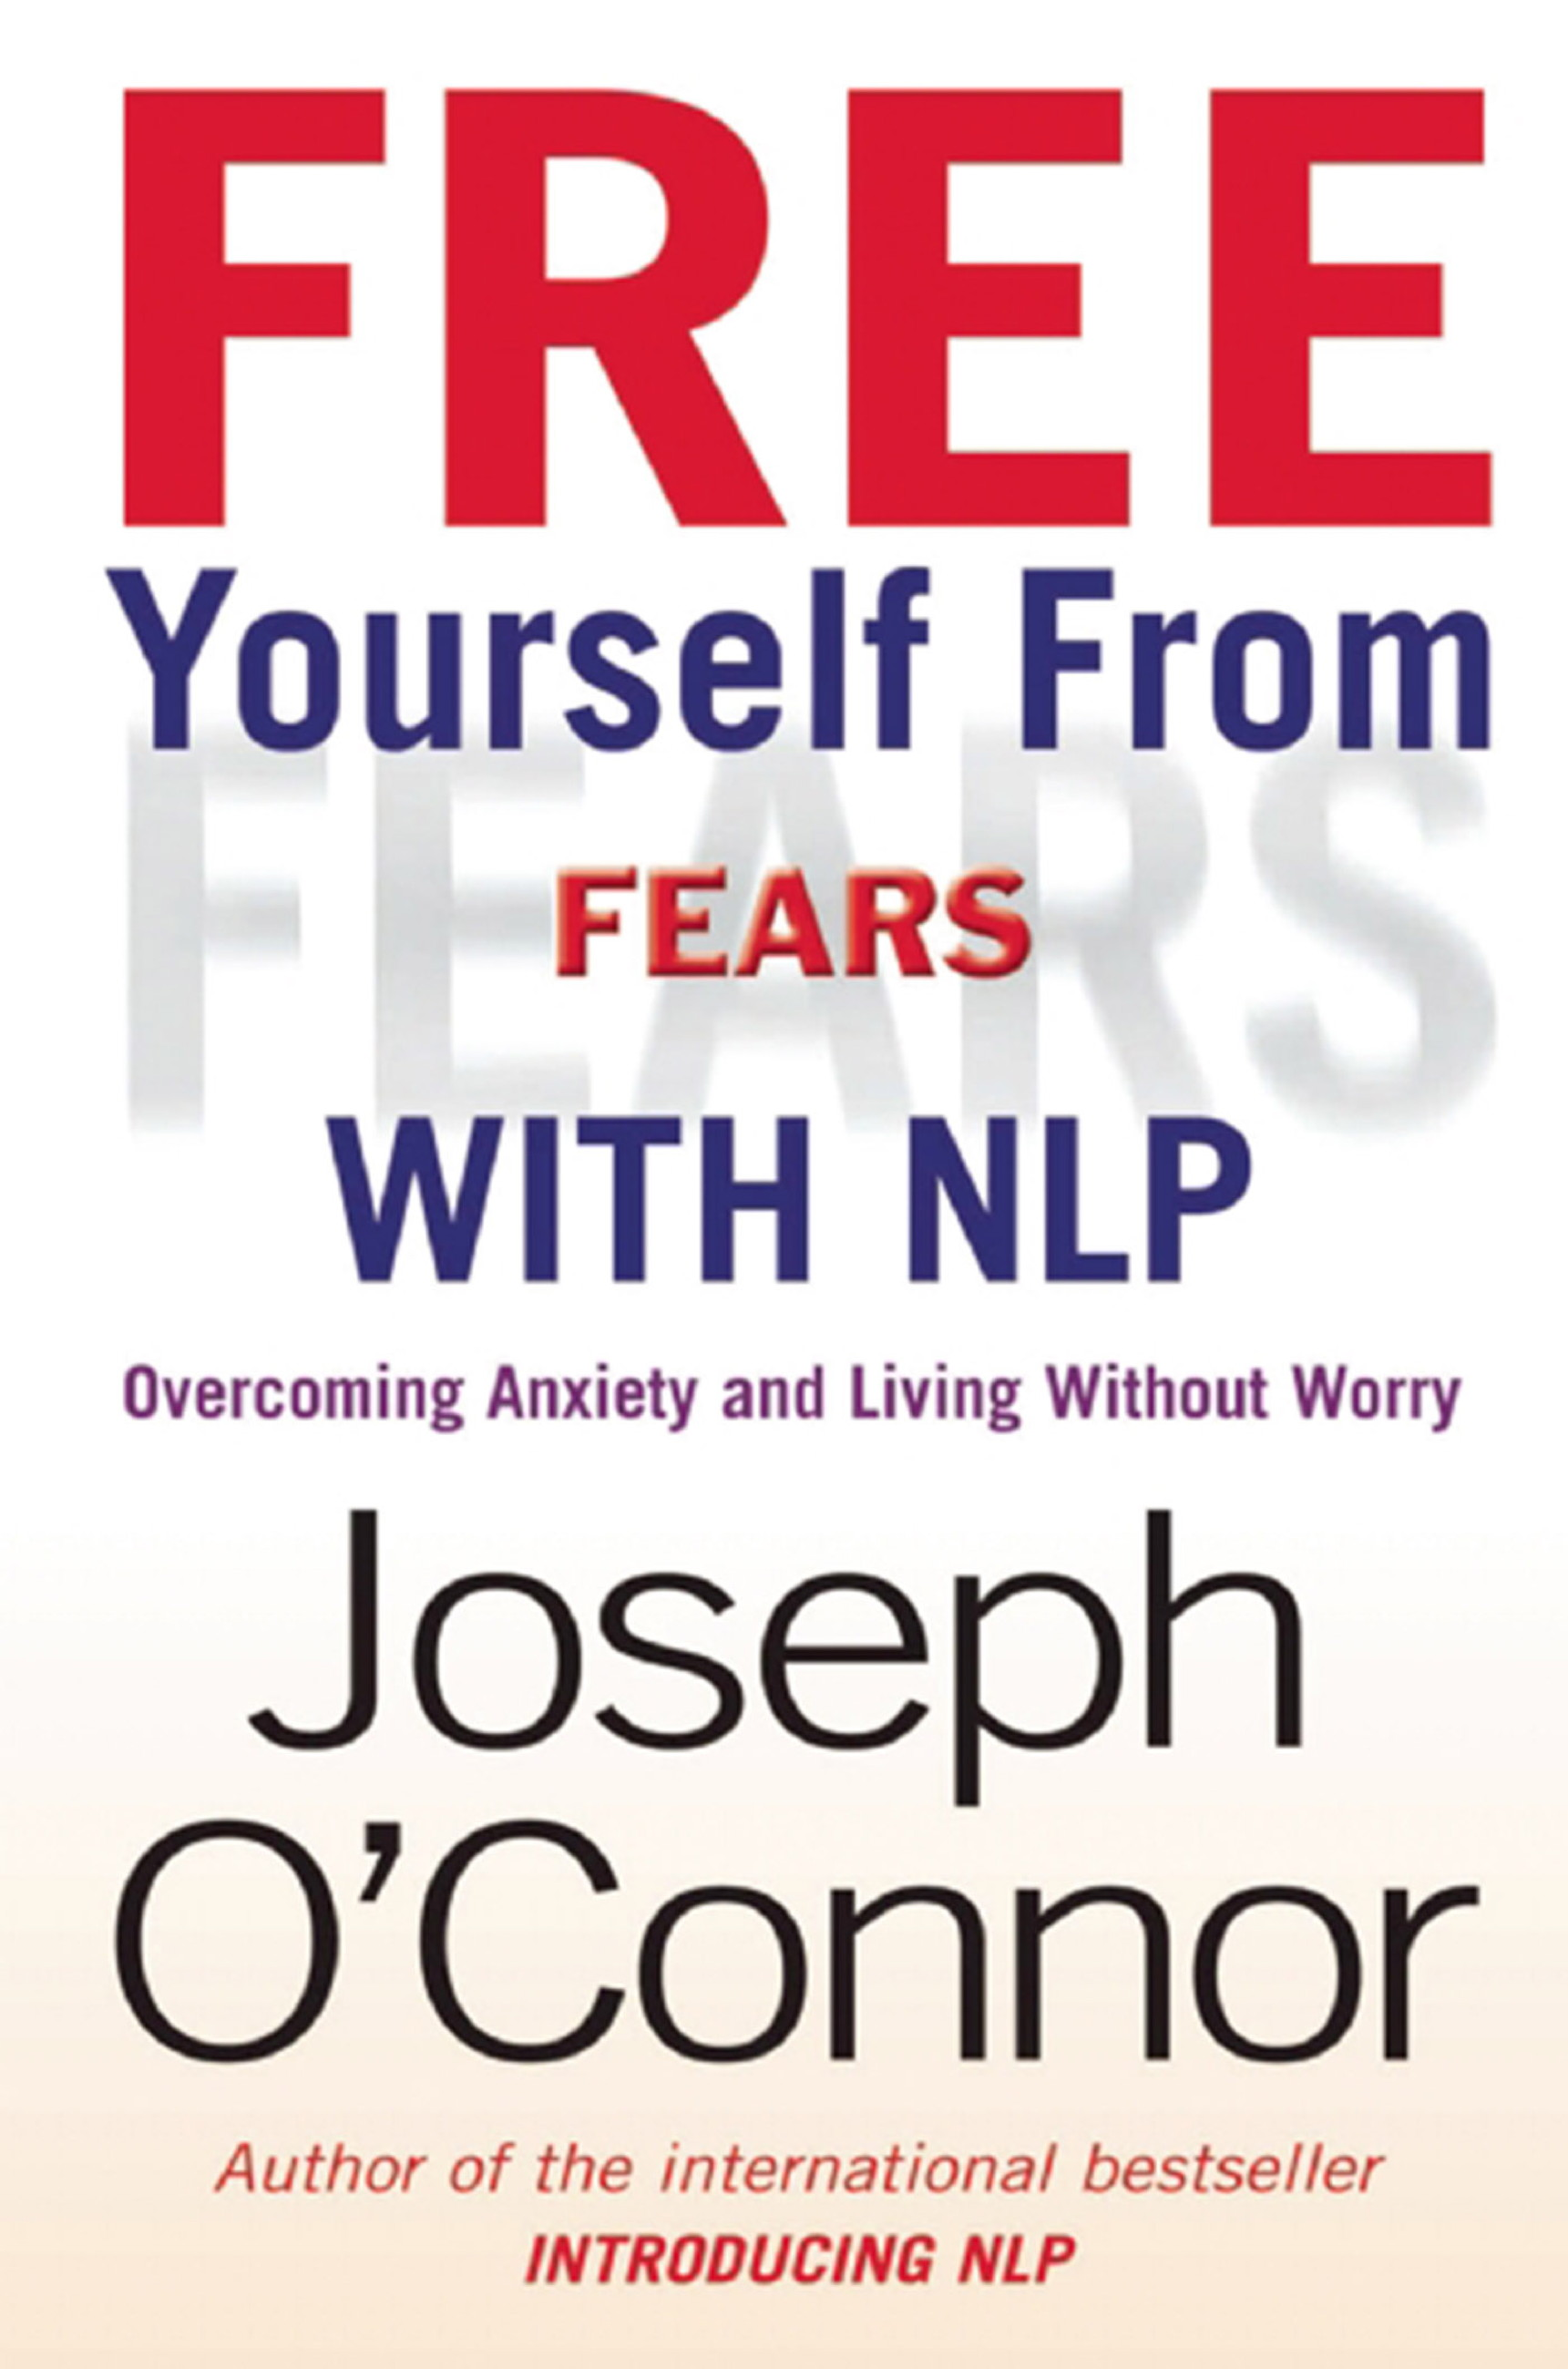 Free Yourself From Fears with NLP